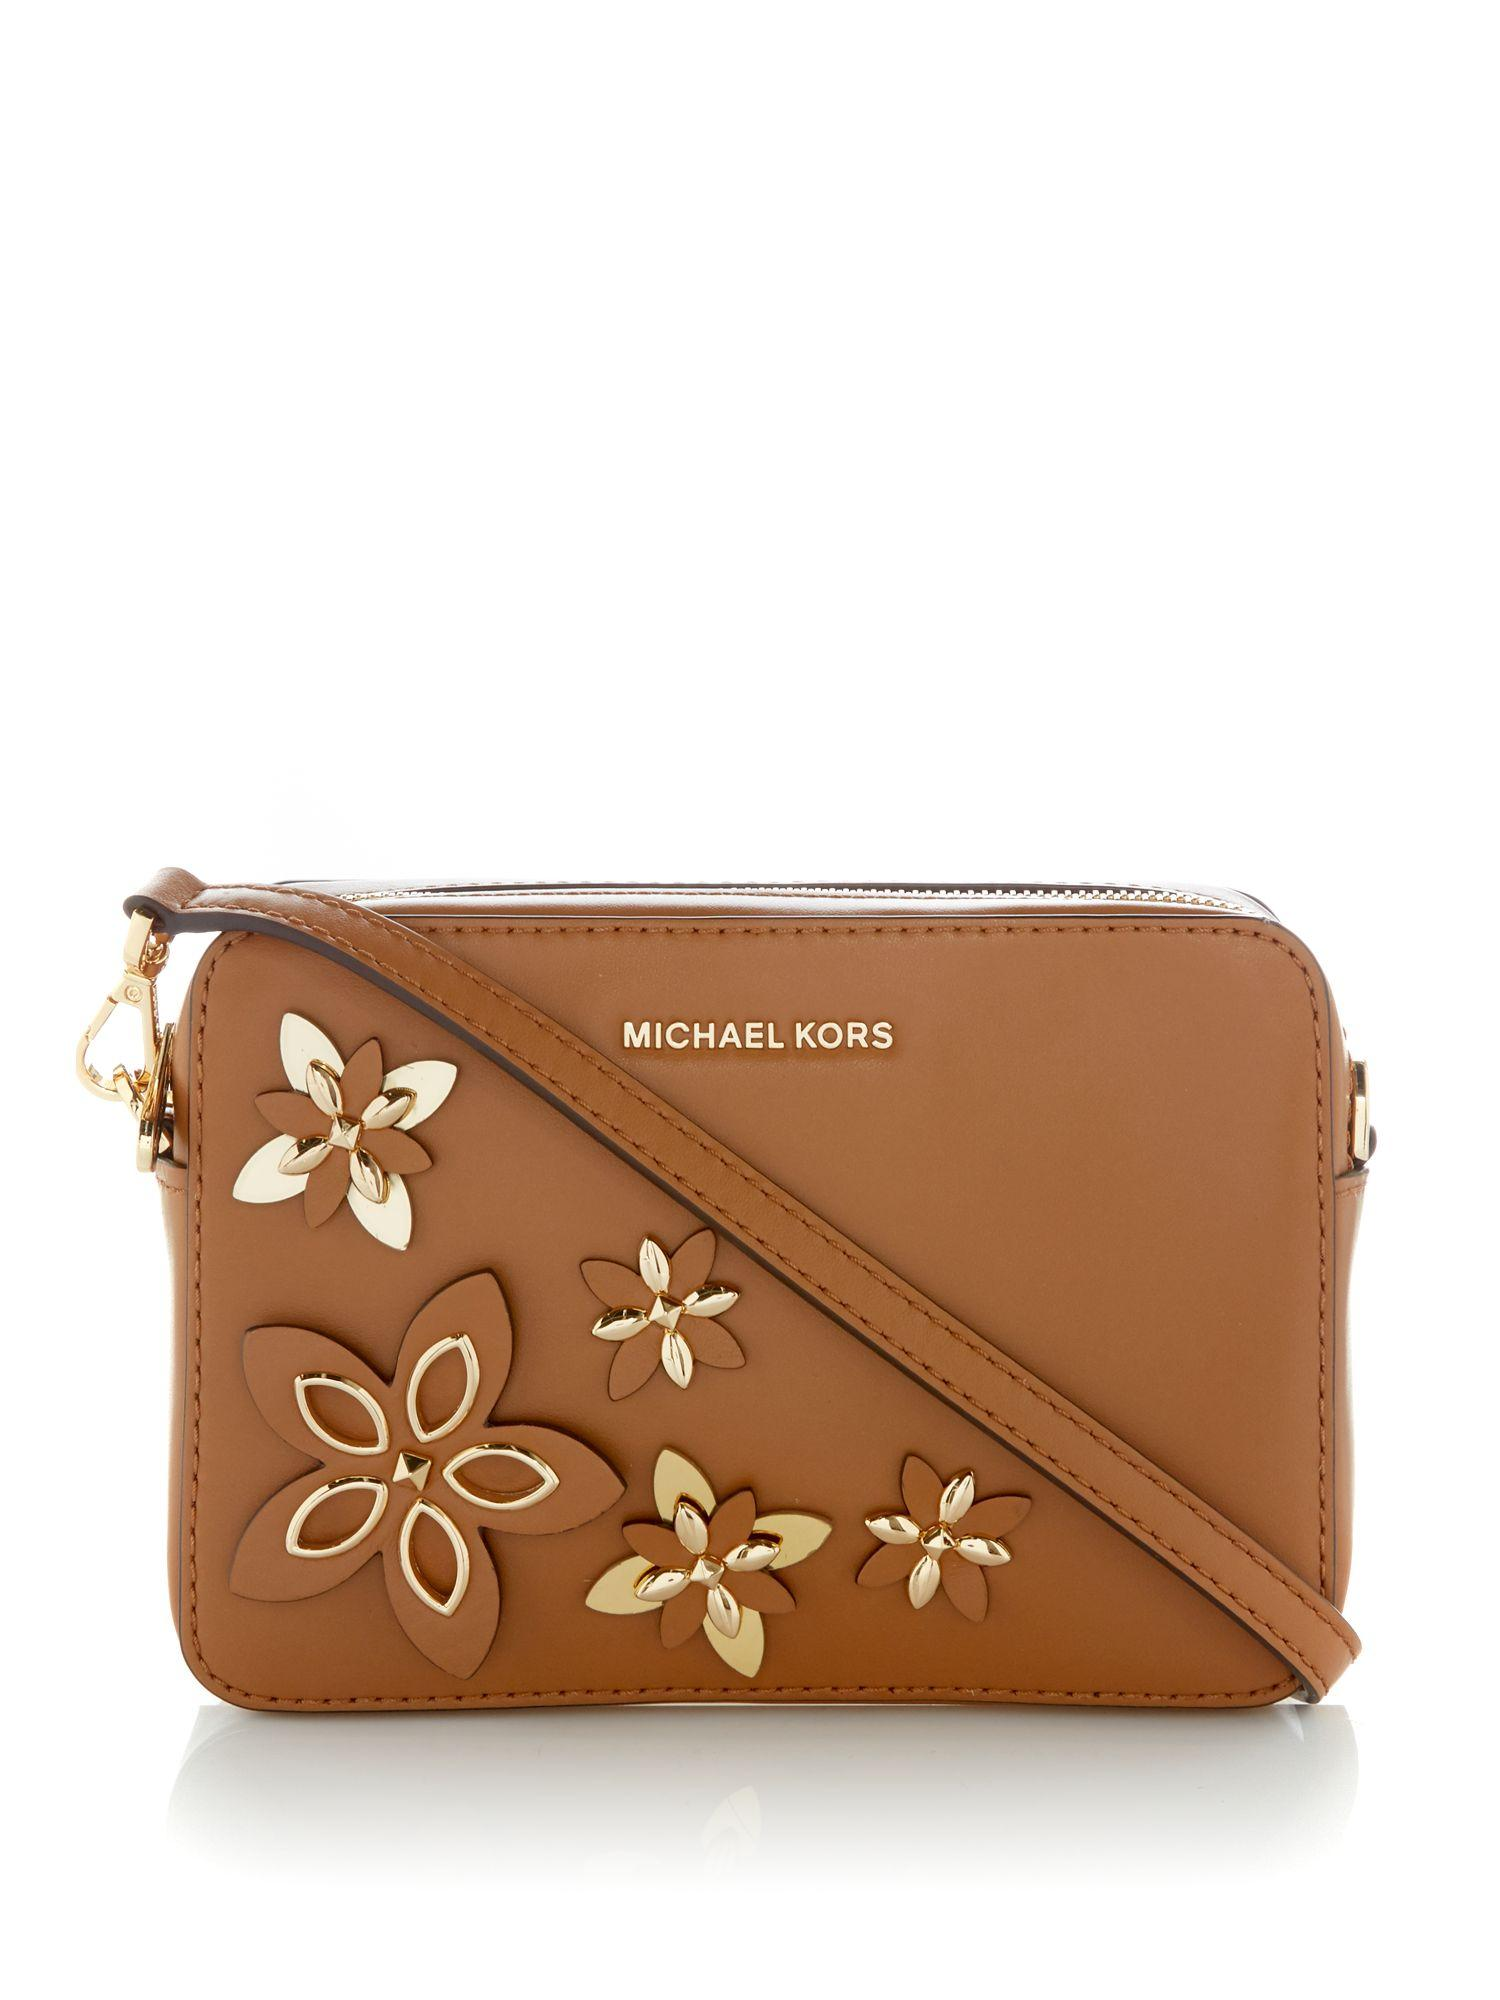 21ac160f793f Michael kors Flowers Pouches Crossbody Bag in Brown